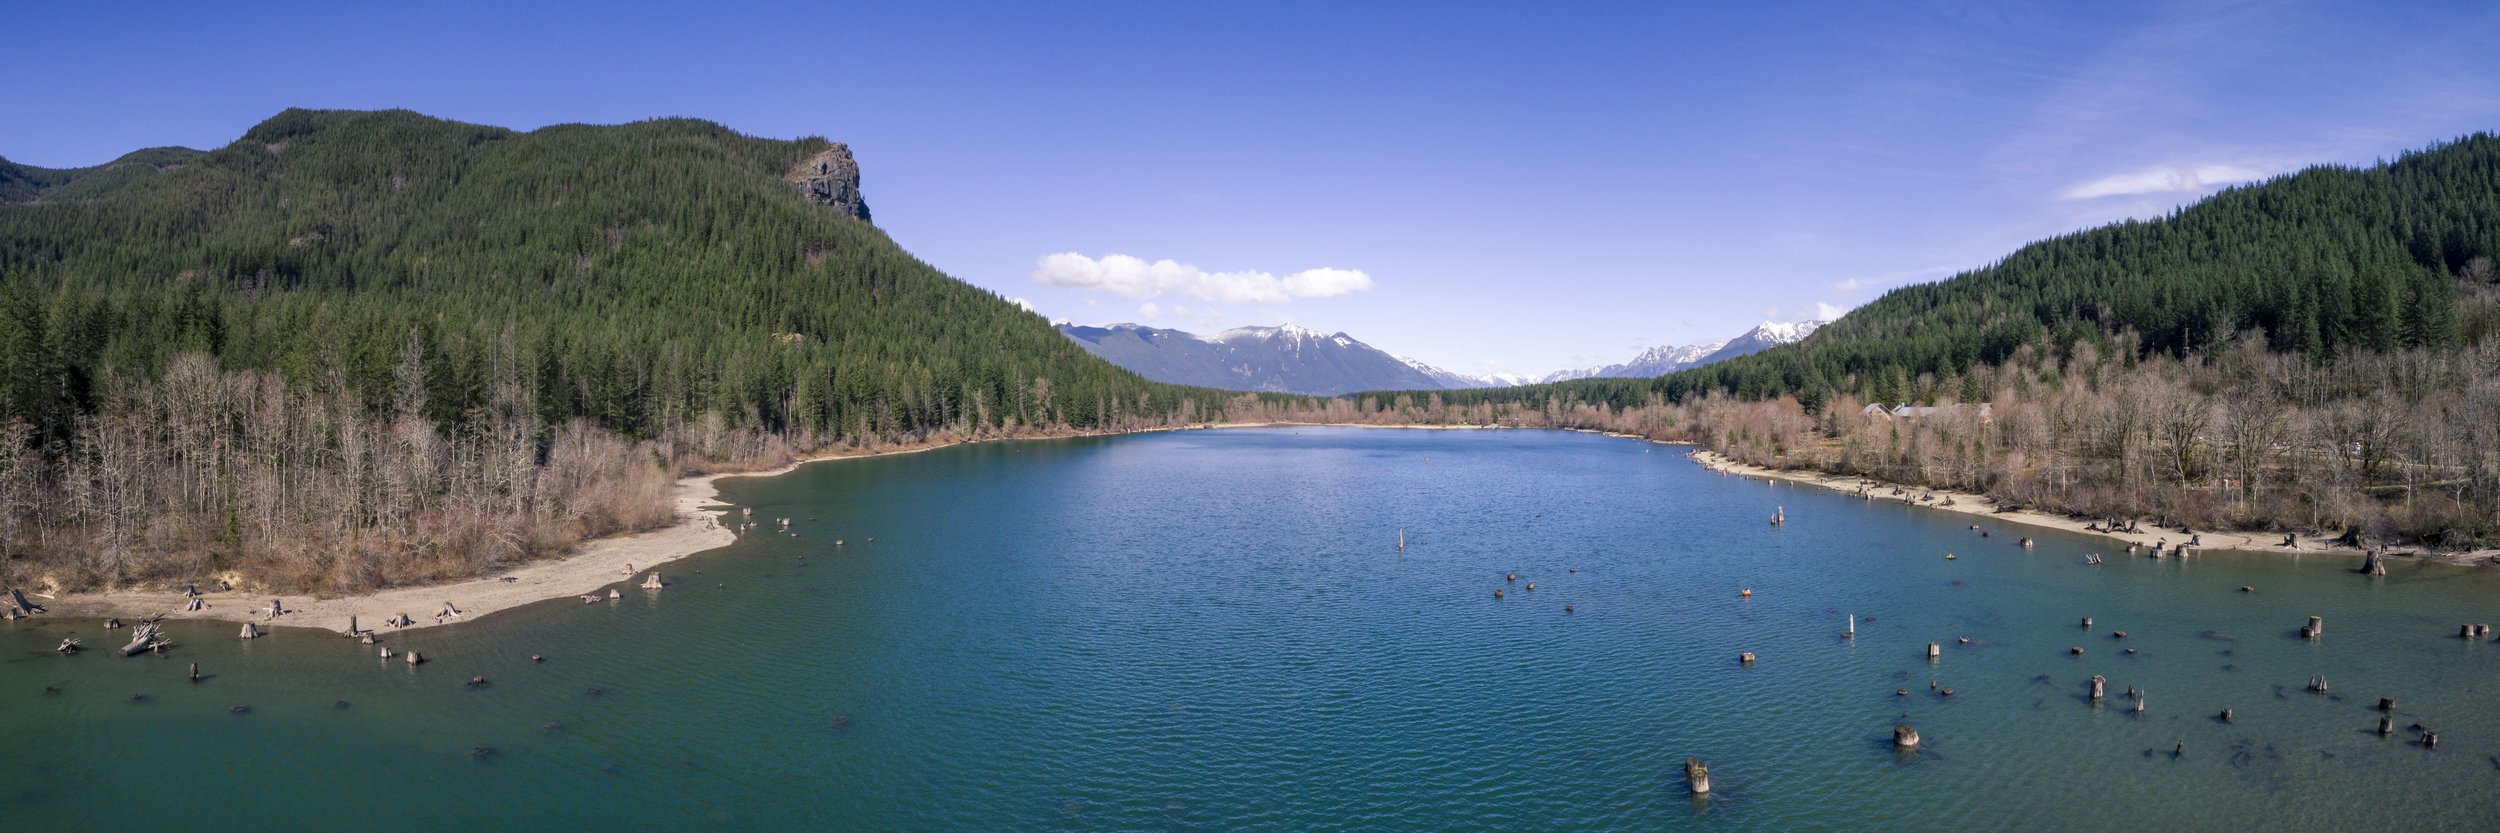 Aerial_Panorama_of_Rattlesnake_Lake_with_Ledge_and_Mt_Si_Background_WEB.jpg